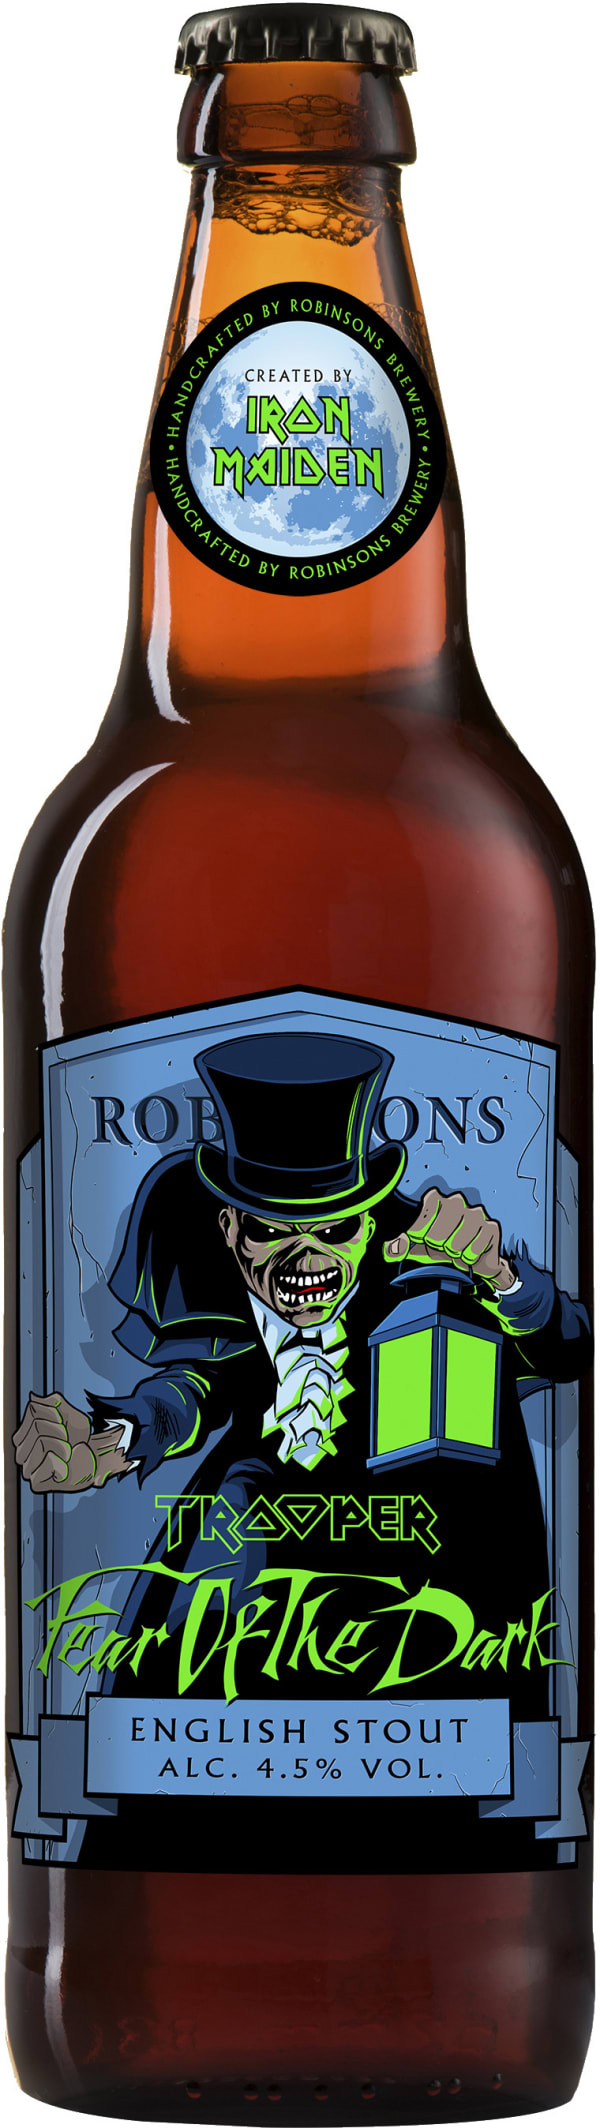 Robinsons Trooper Fear Of The Dark Stout